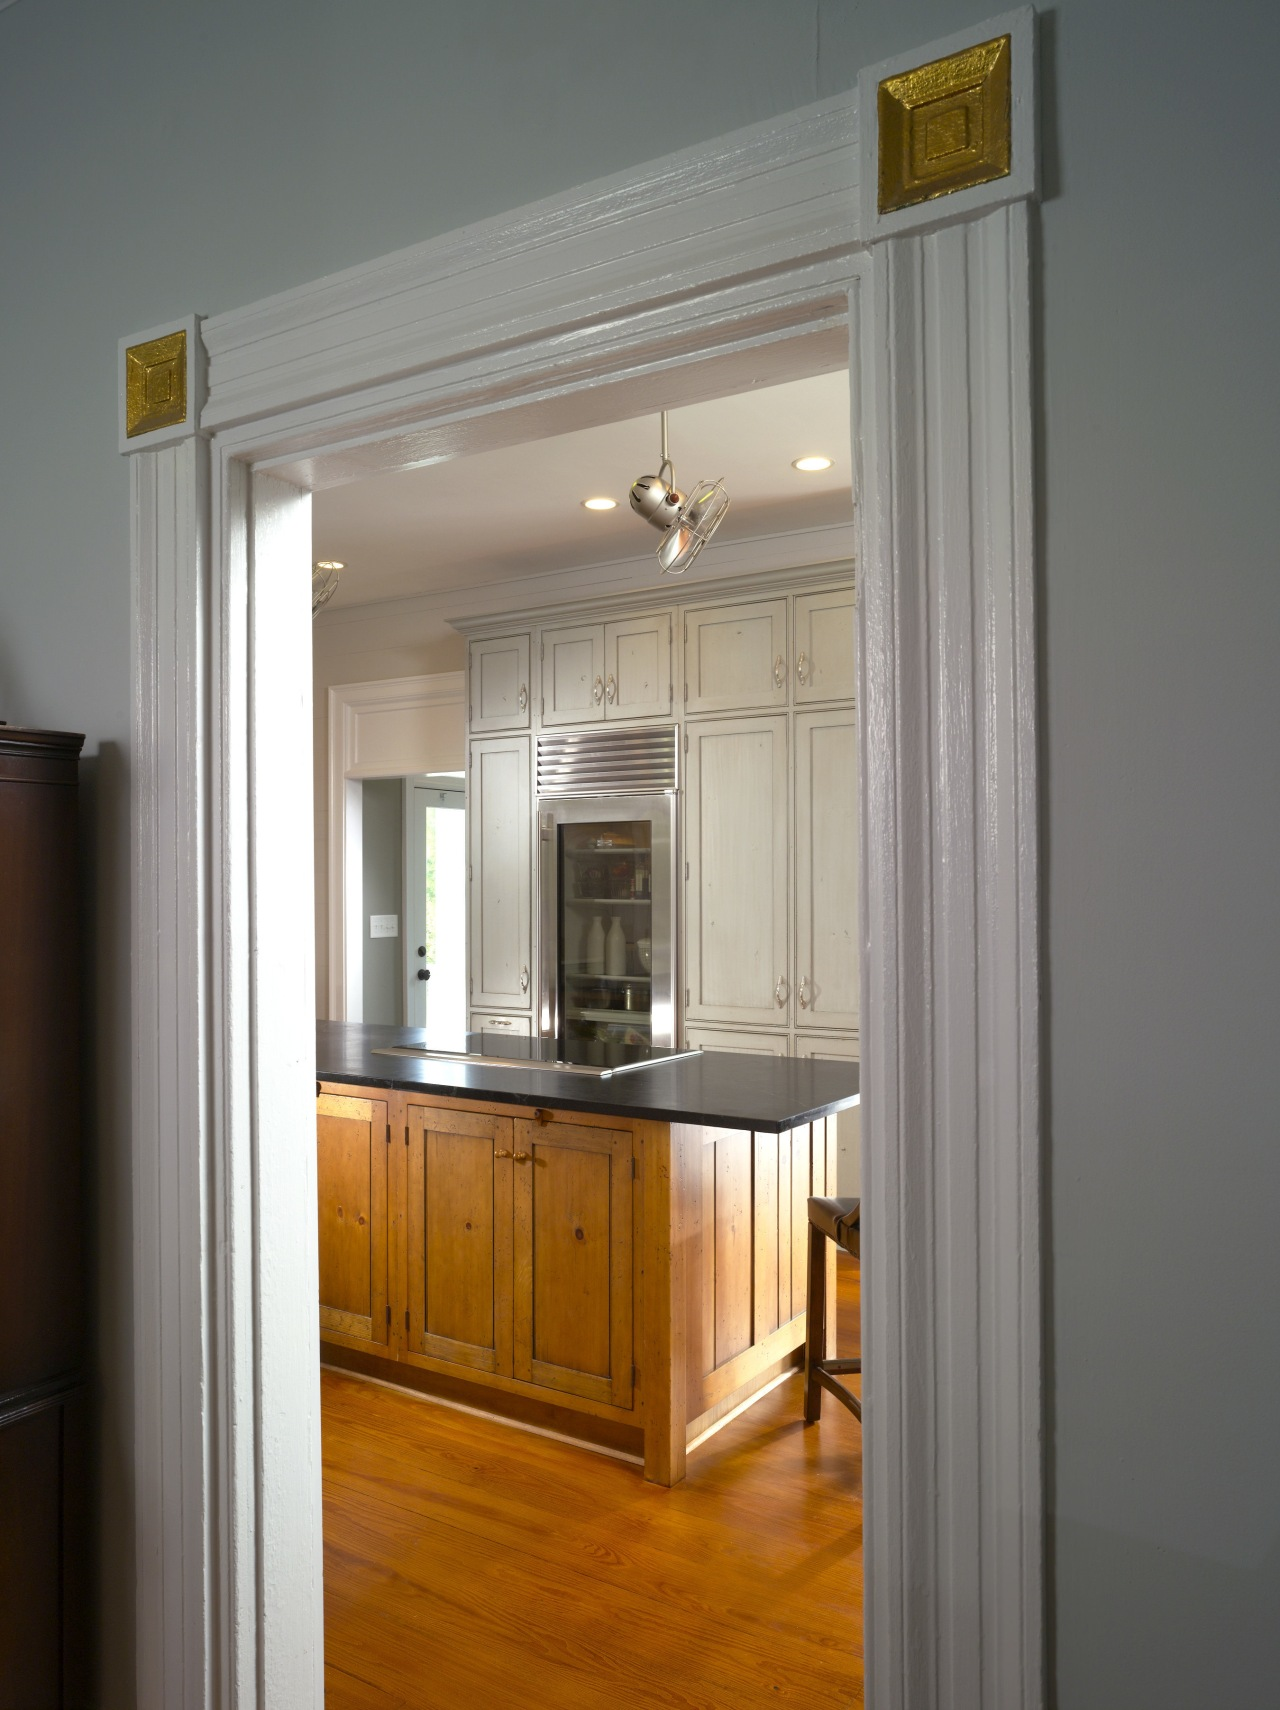 View of the original 1832 farmhouse door and cabinetry, furniture, home, interior design, room, gray